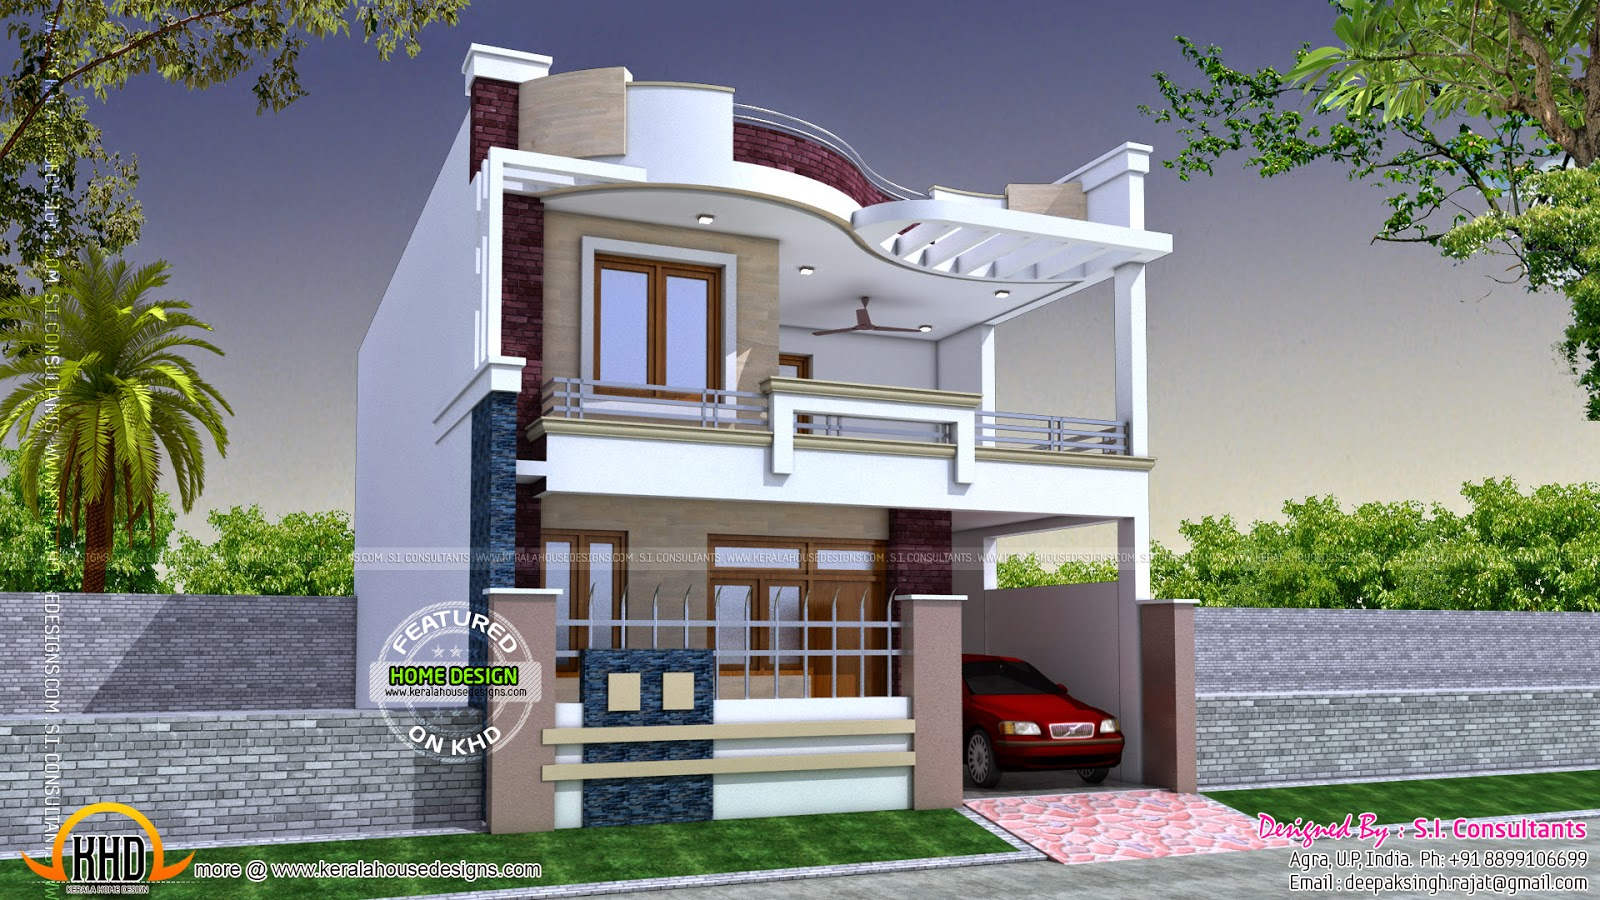 Modern indian home design kerala home design and floor plans for Second floor house plans indian pattern